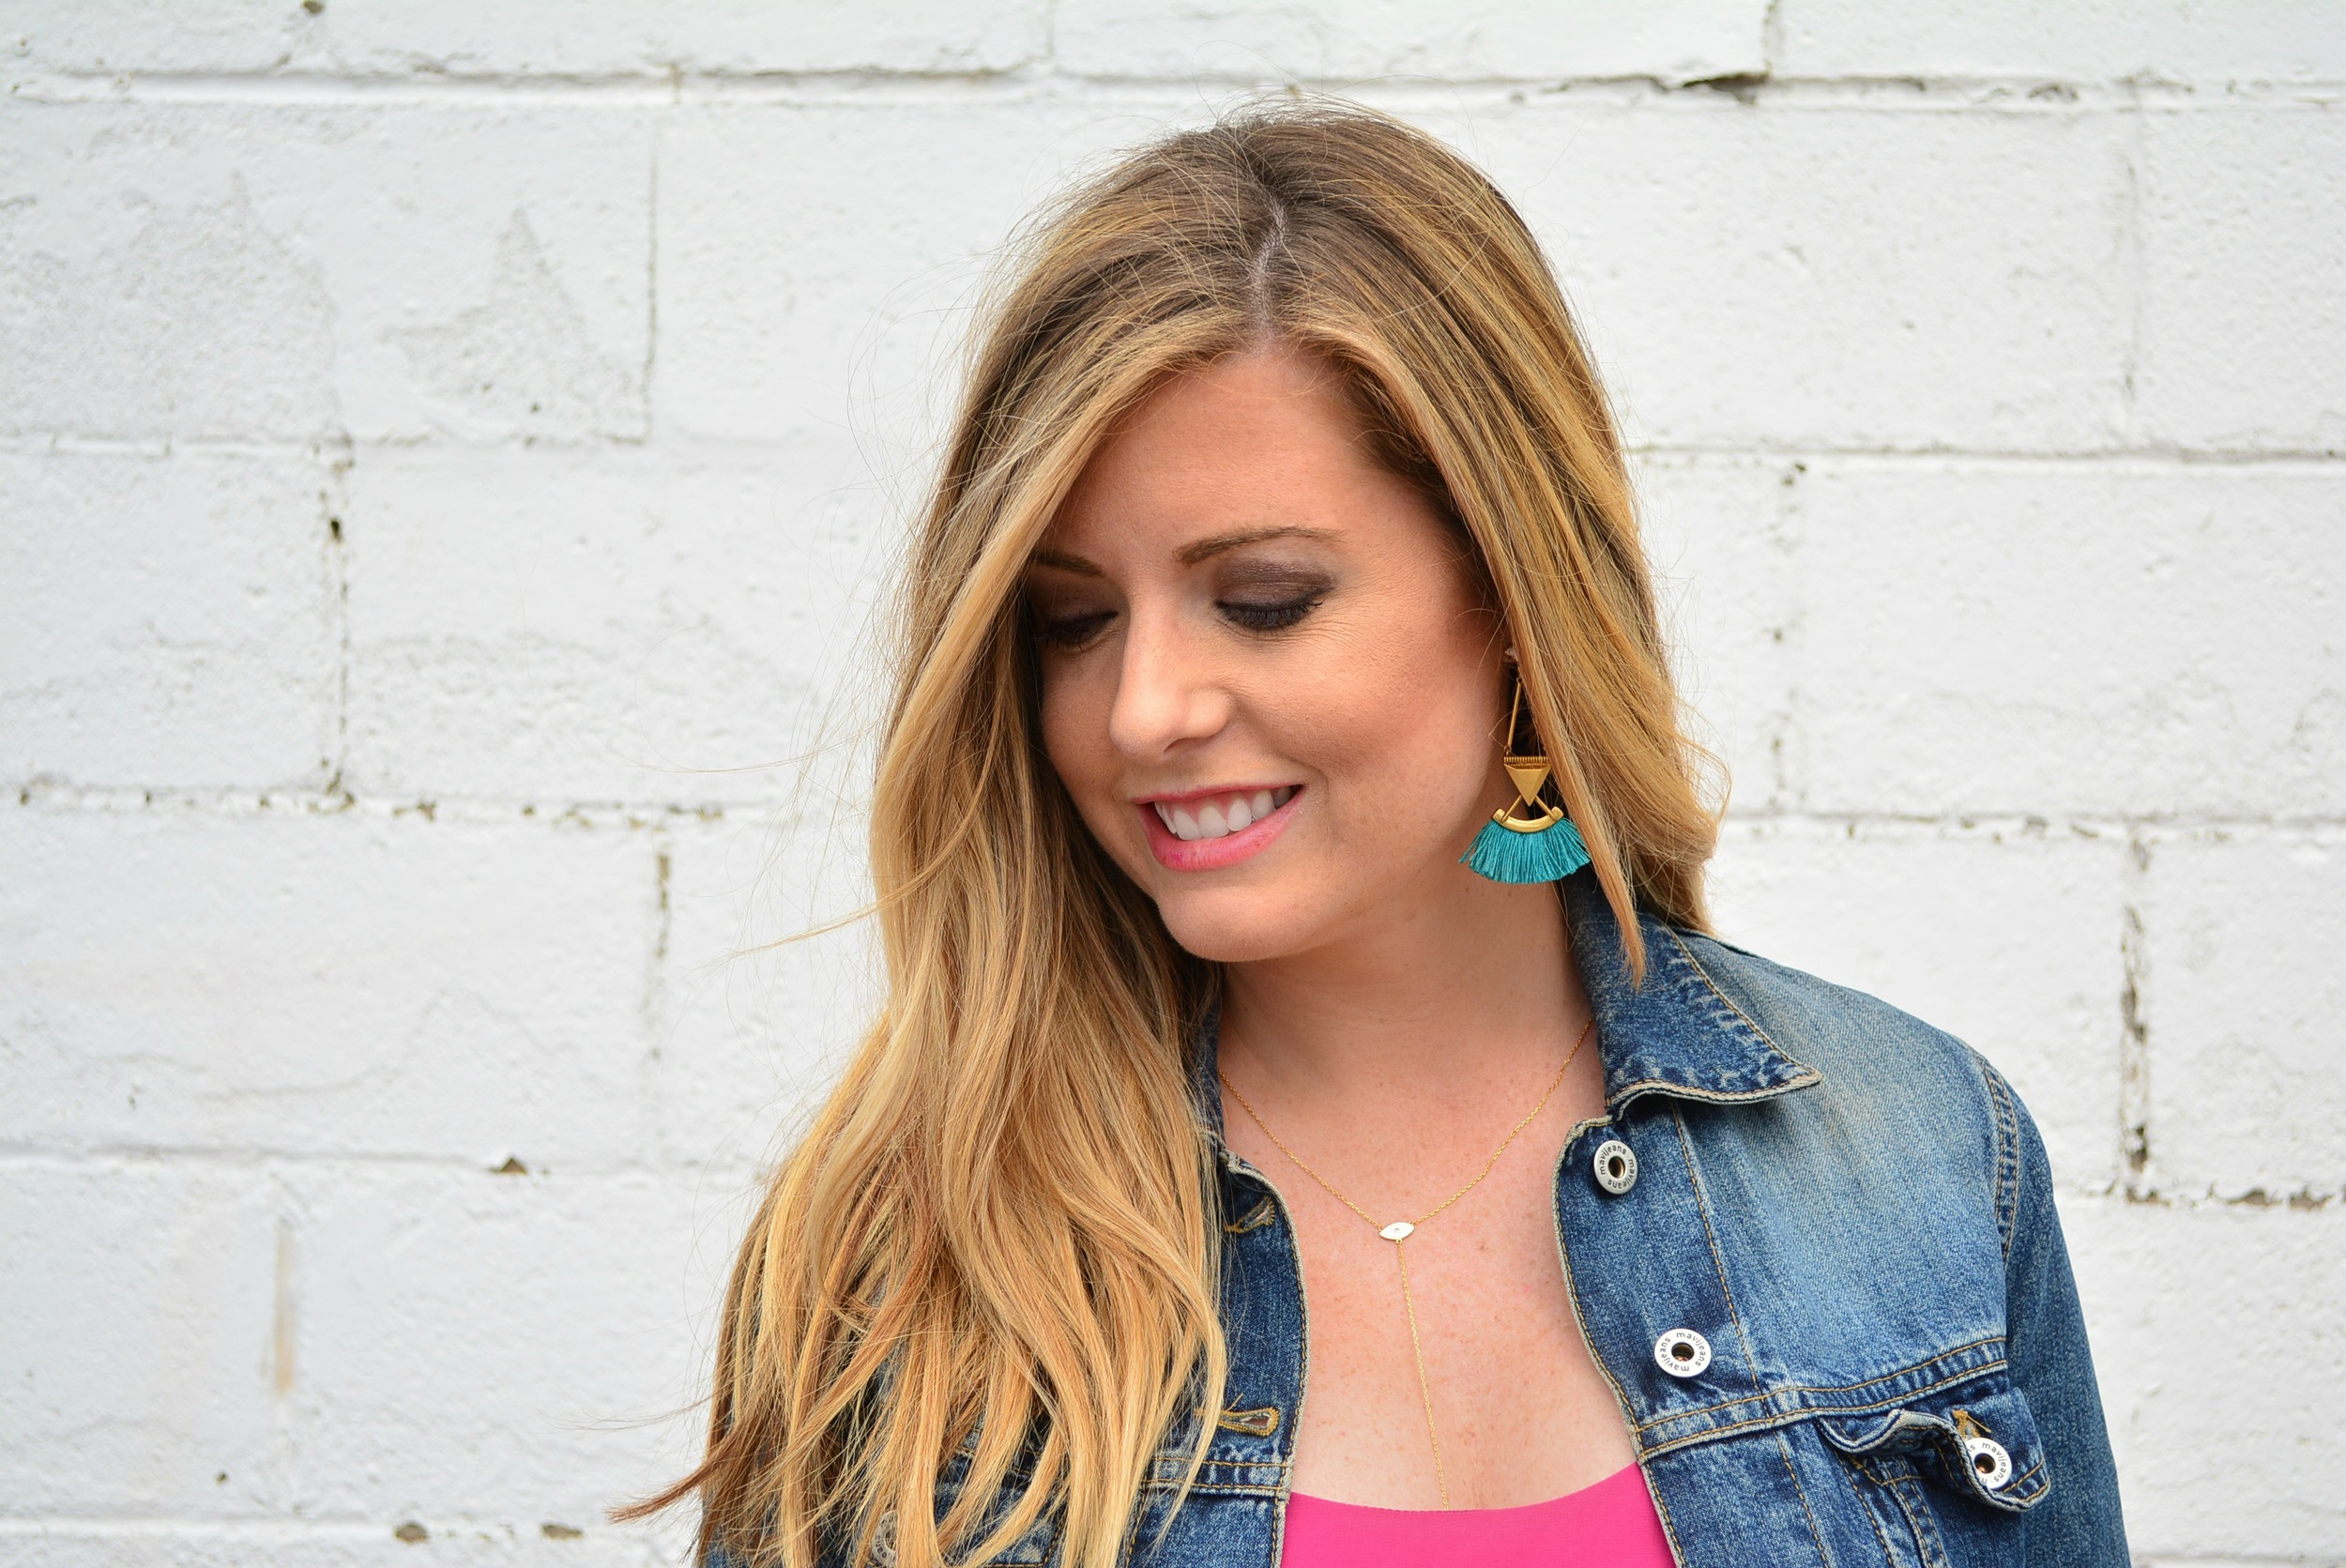 Maternity outfit of fuchsia maxi dress with denim jacket and turquoise tassel earrings